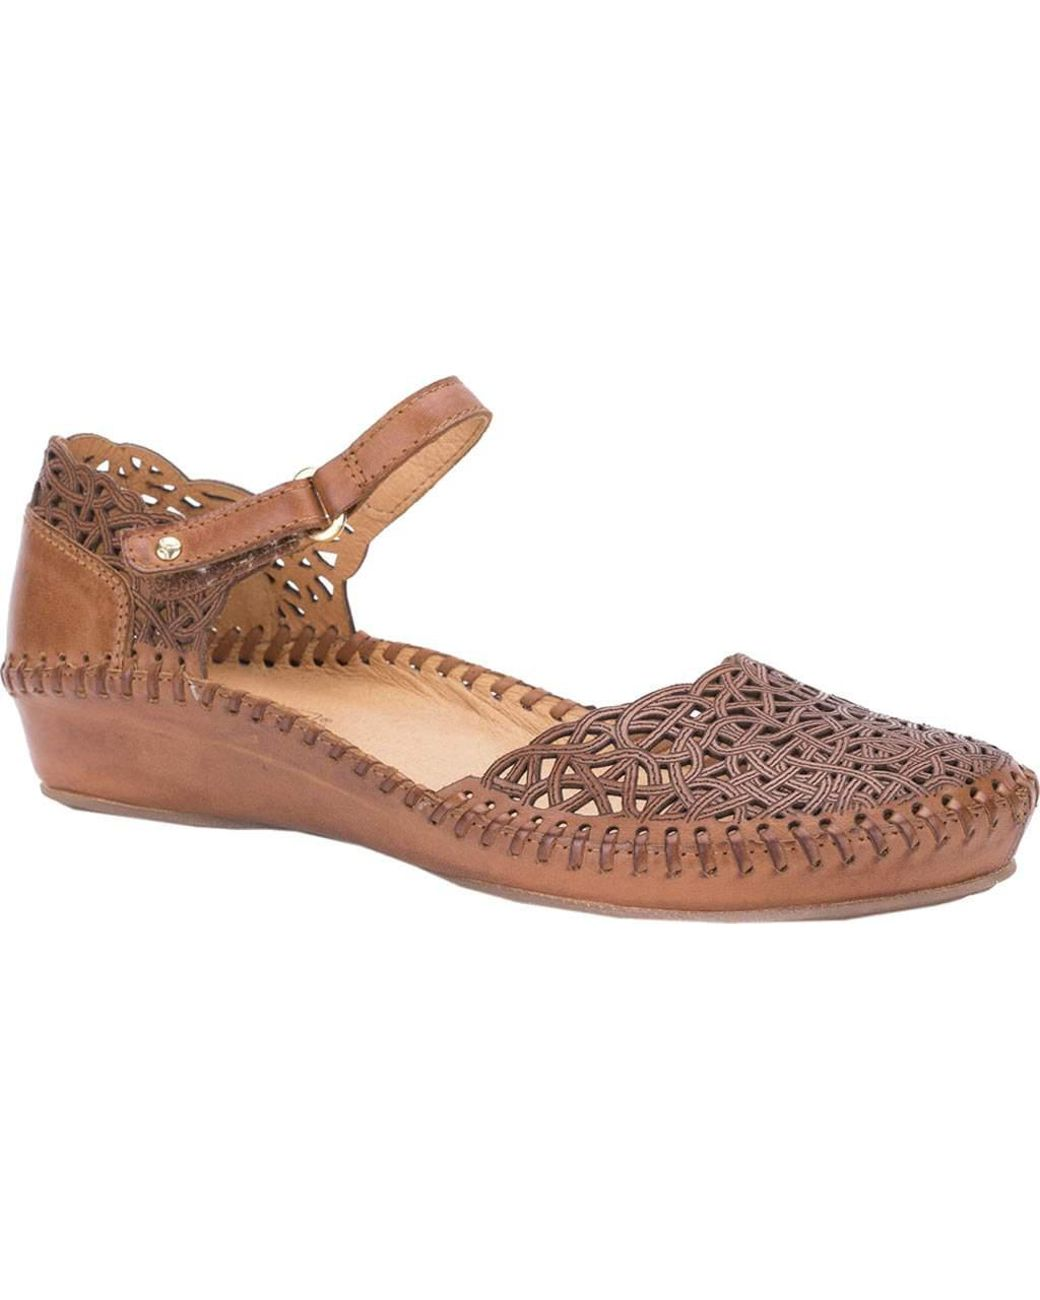 8a0501366 Lyst - Pikolinos Puerto Vallarta Closed Toe Sandal 655-1532 in Brown